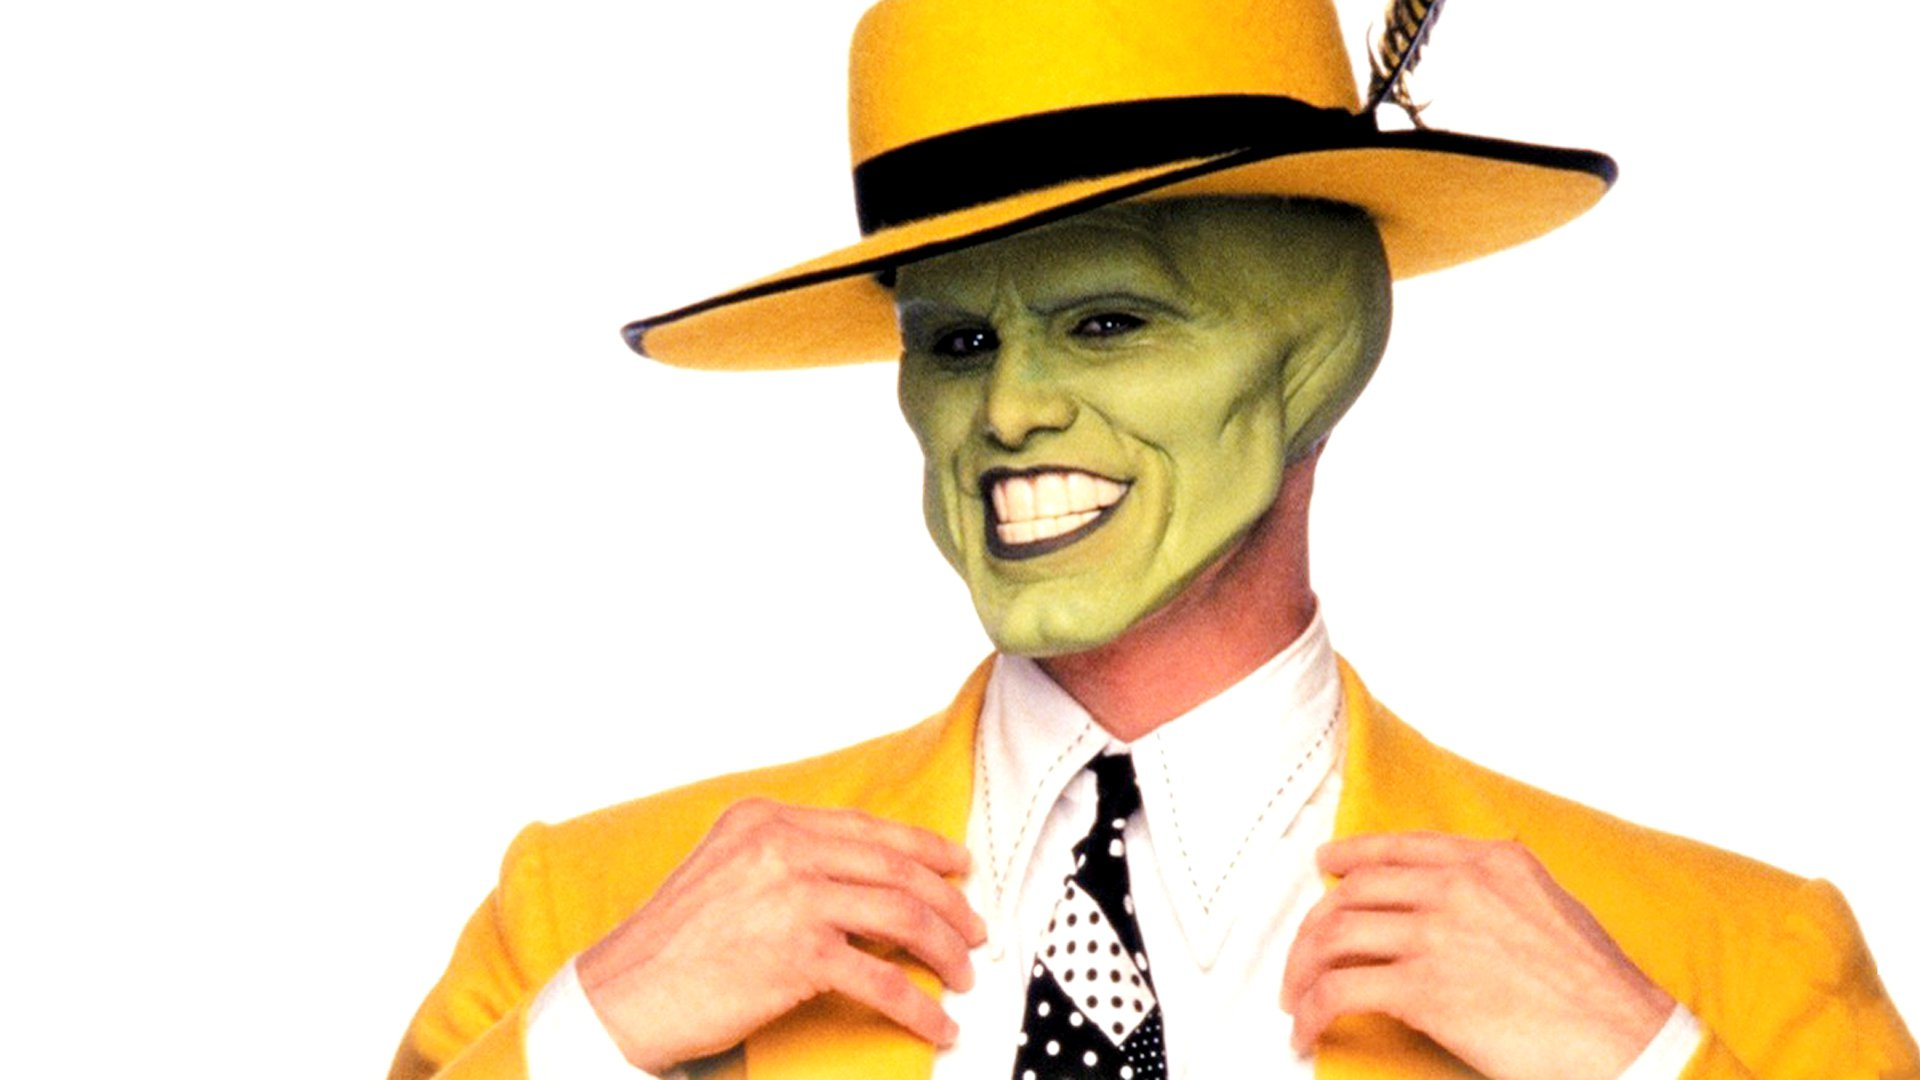 The Mask (Film, 1h 40m... Jim Carrey The Mask